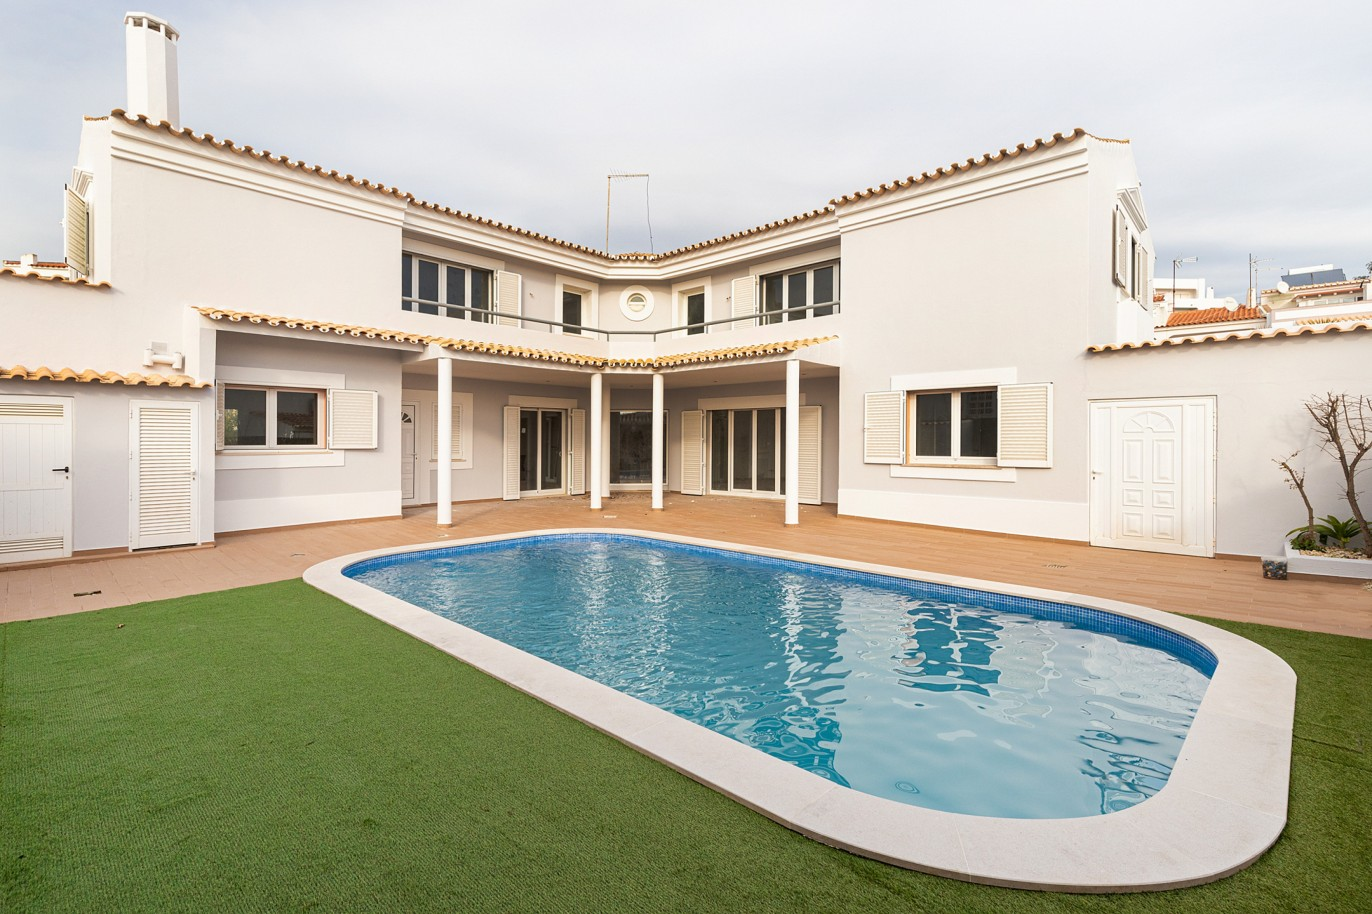 villa-with-4-bedrooms-and-swimming-pool-center-of-albufeira-algarve